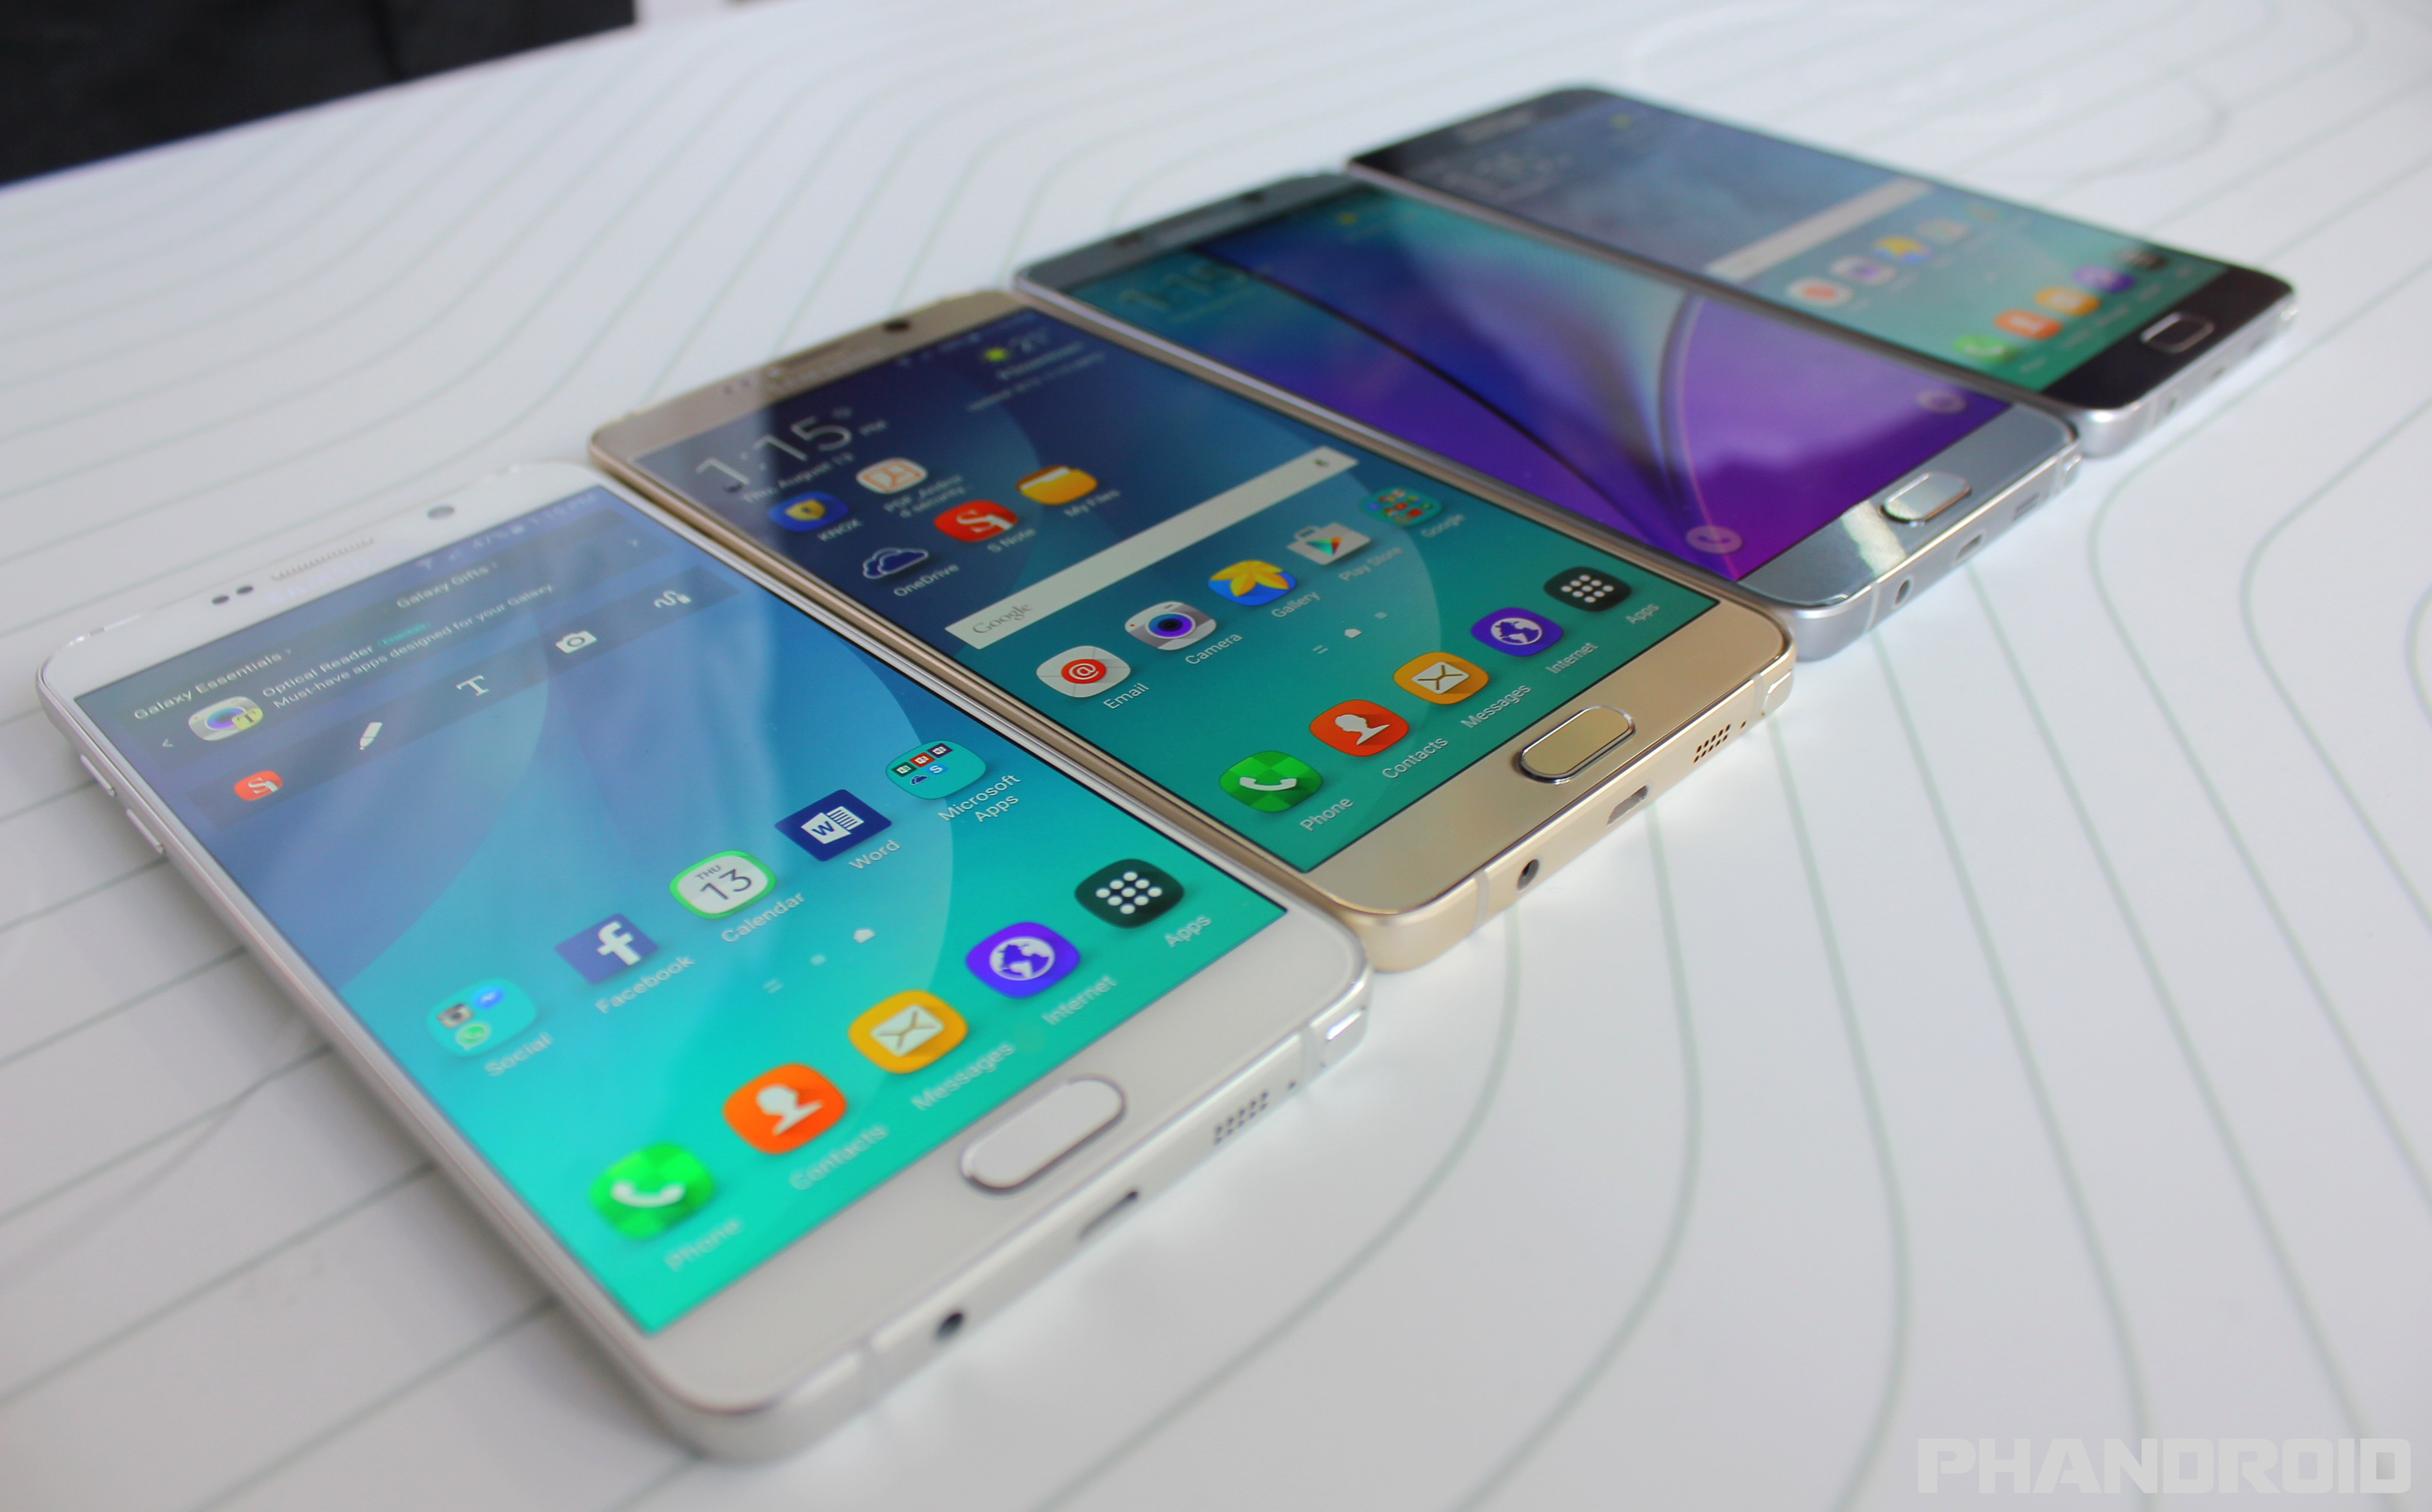 Download 6 High Res Wallpapers From The Samsung Galaxy Note 5